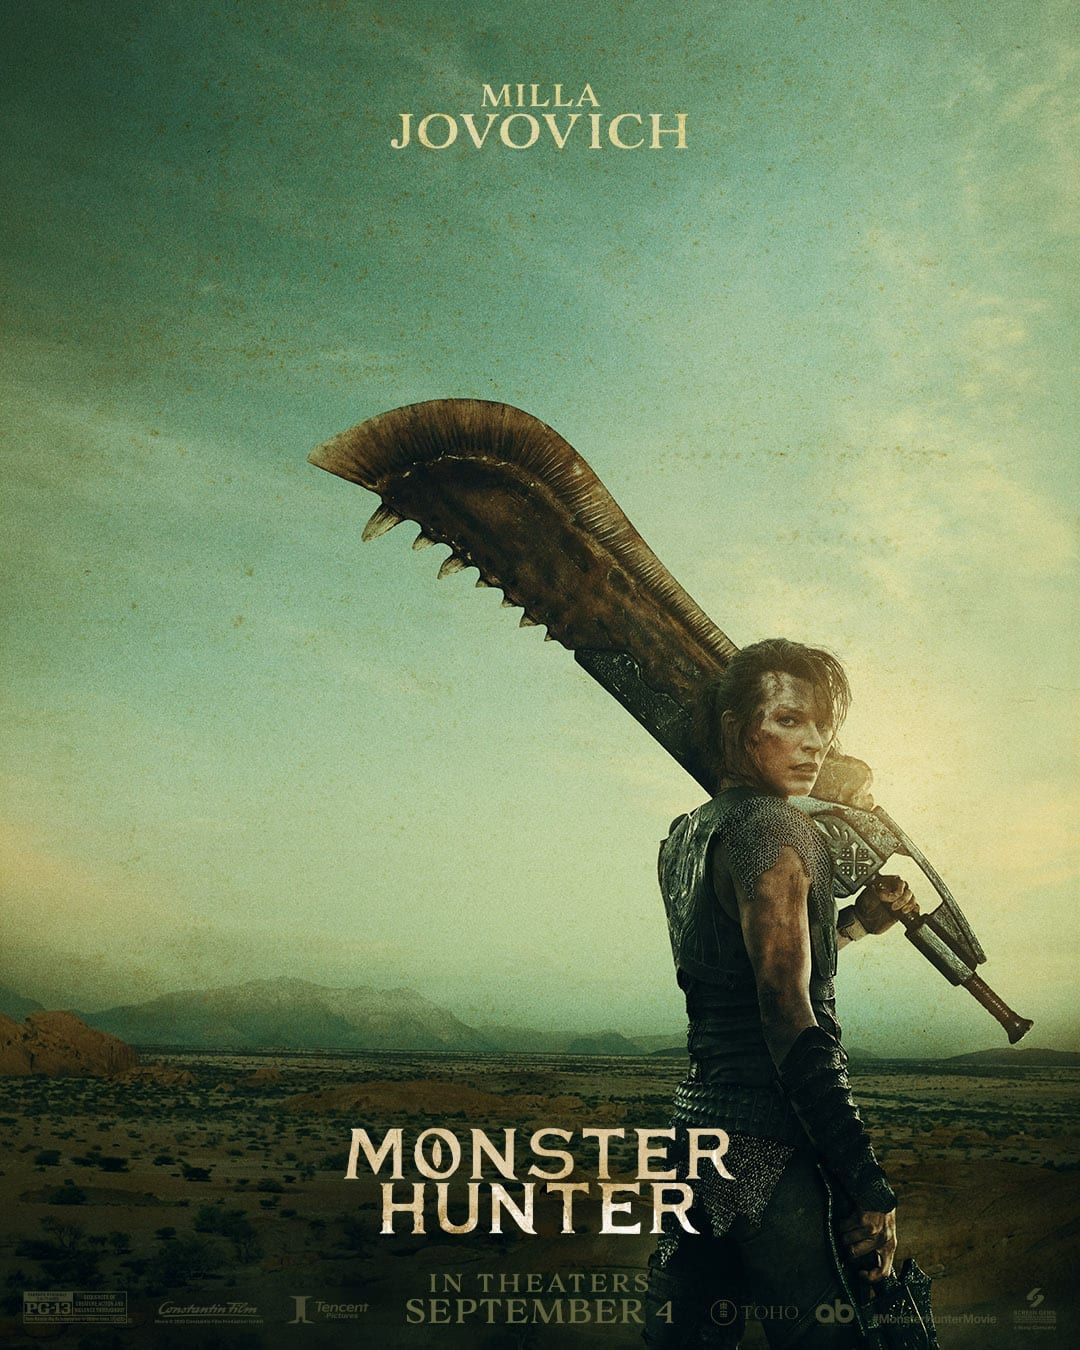 Monster Hunter 2021 Movie Release Trailer Monster Hunter Movie Milla Jovovich Monster Hunter